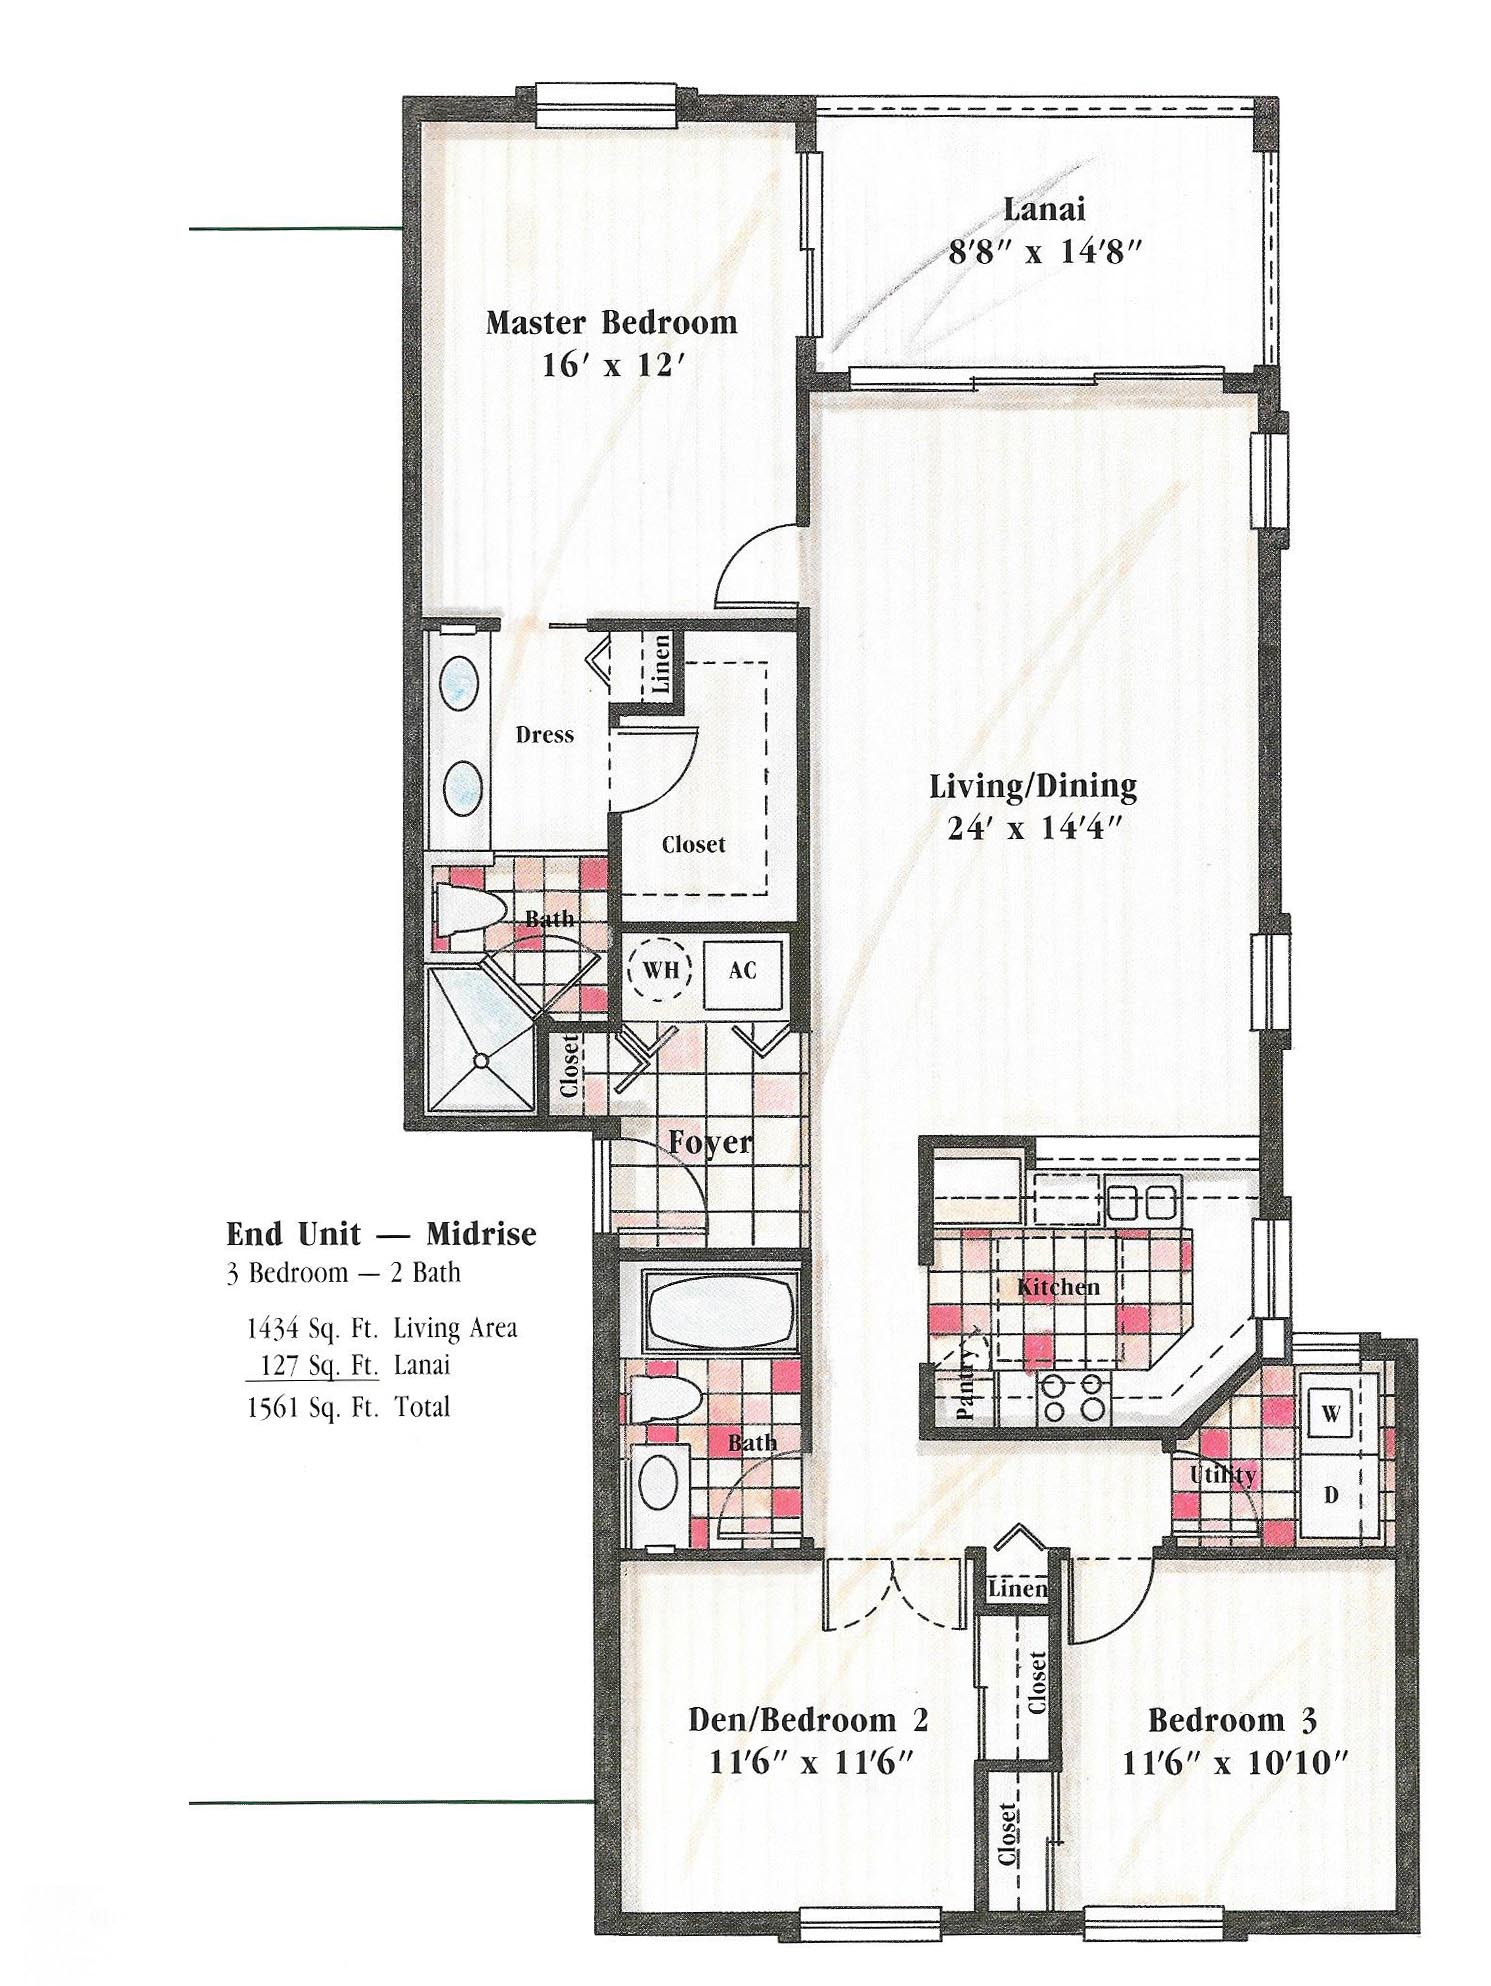 Greenbriar on quail homes floor plans